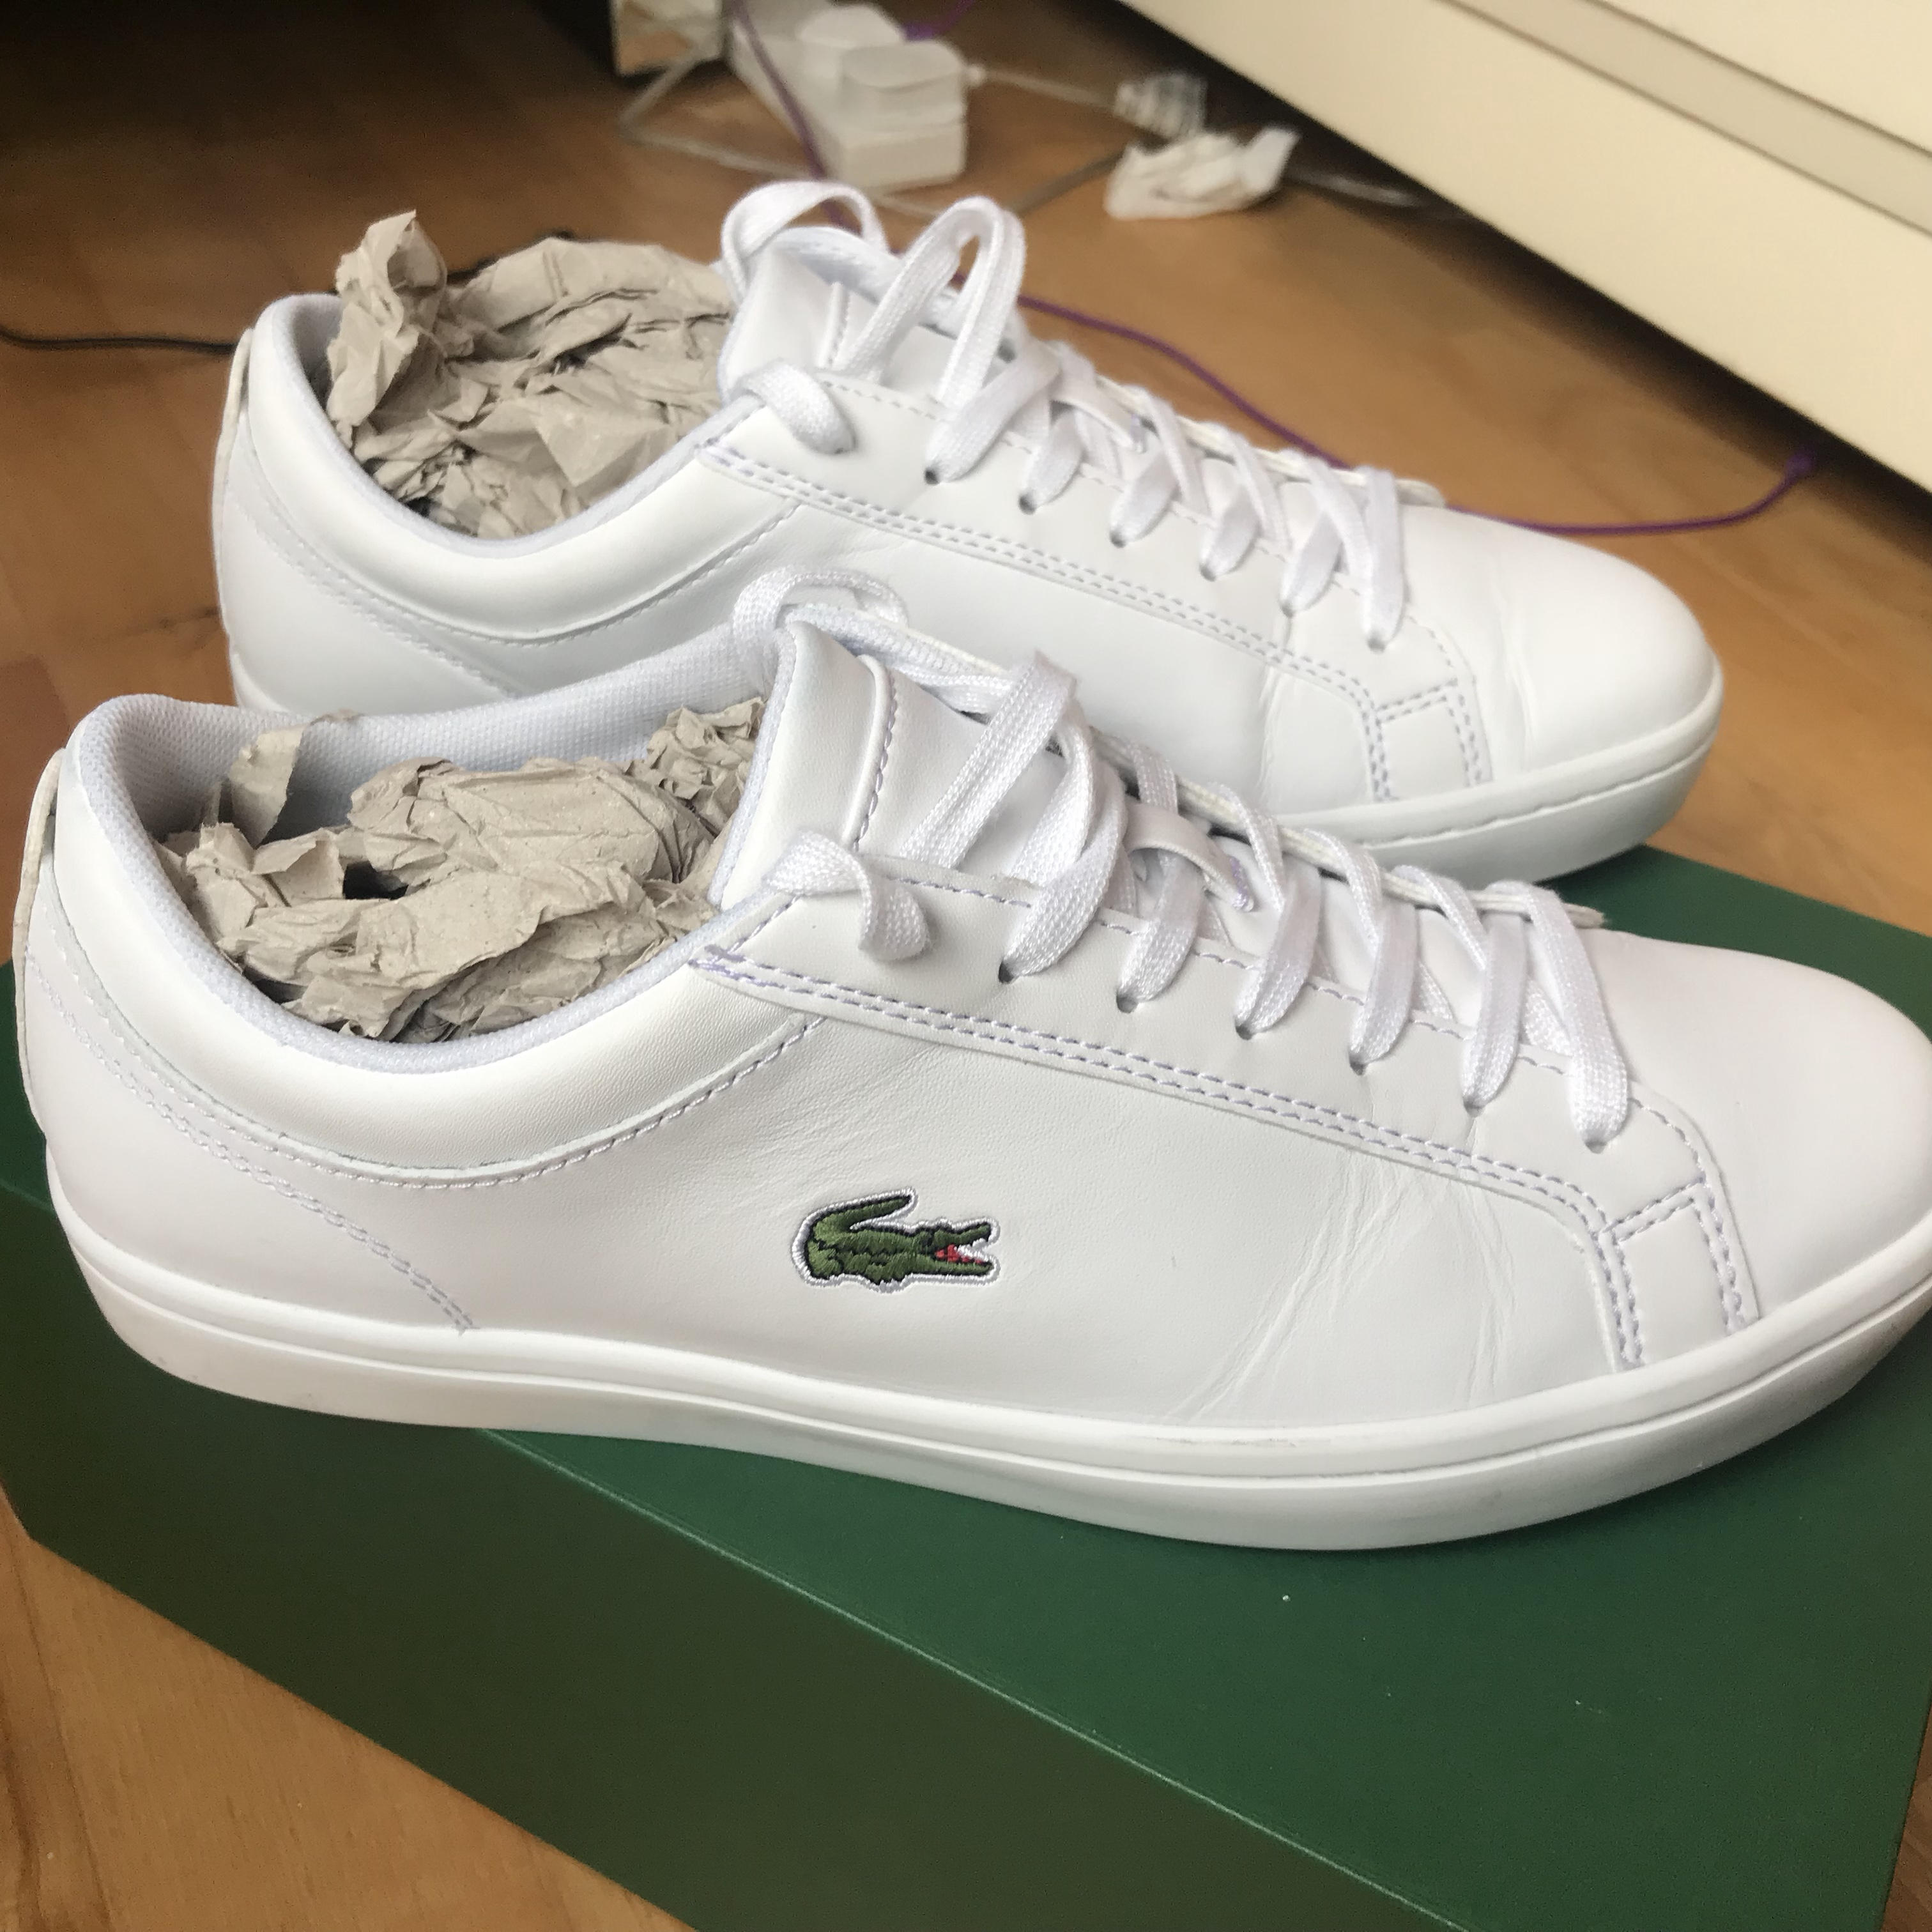 Lacoste classic straightset white